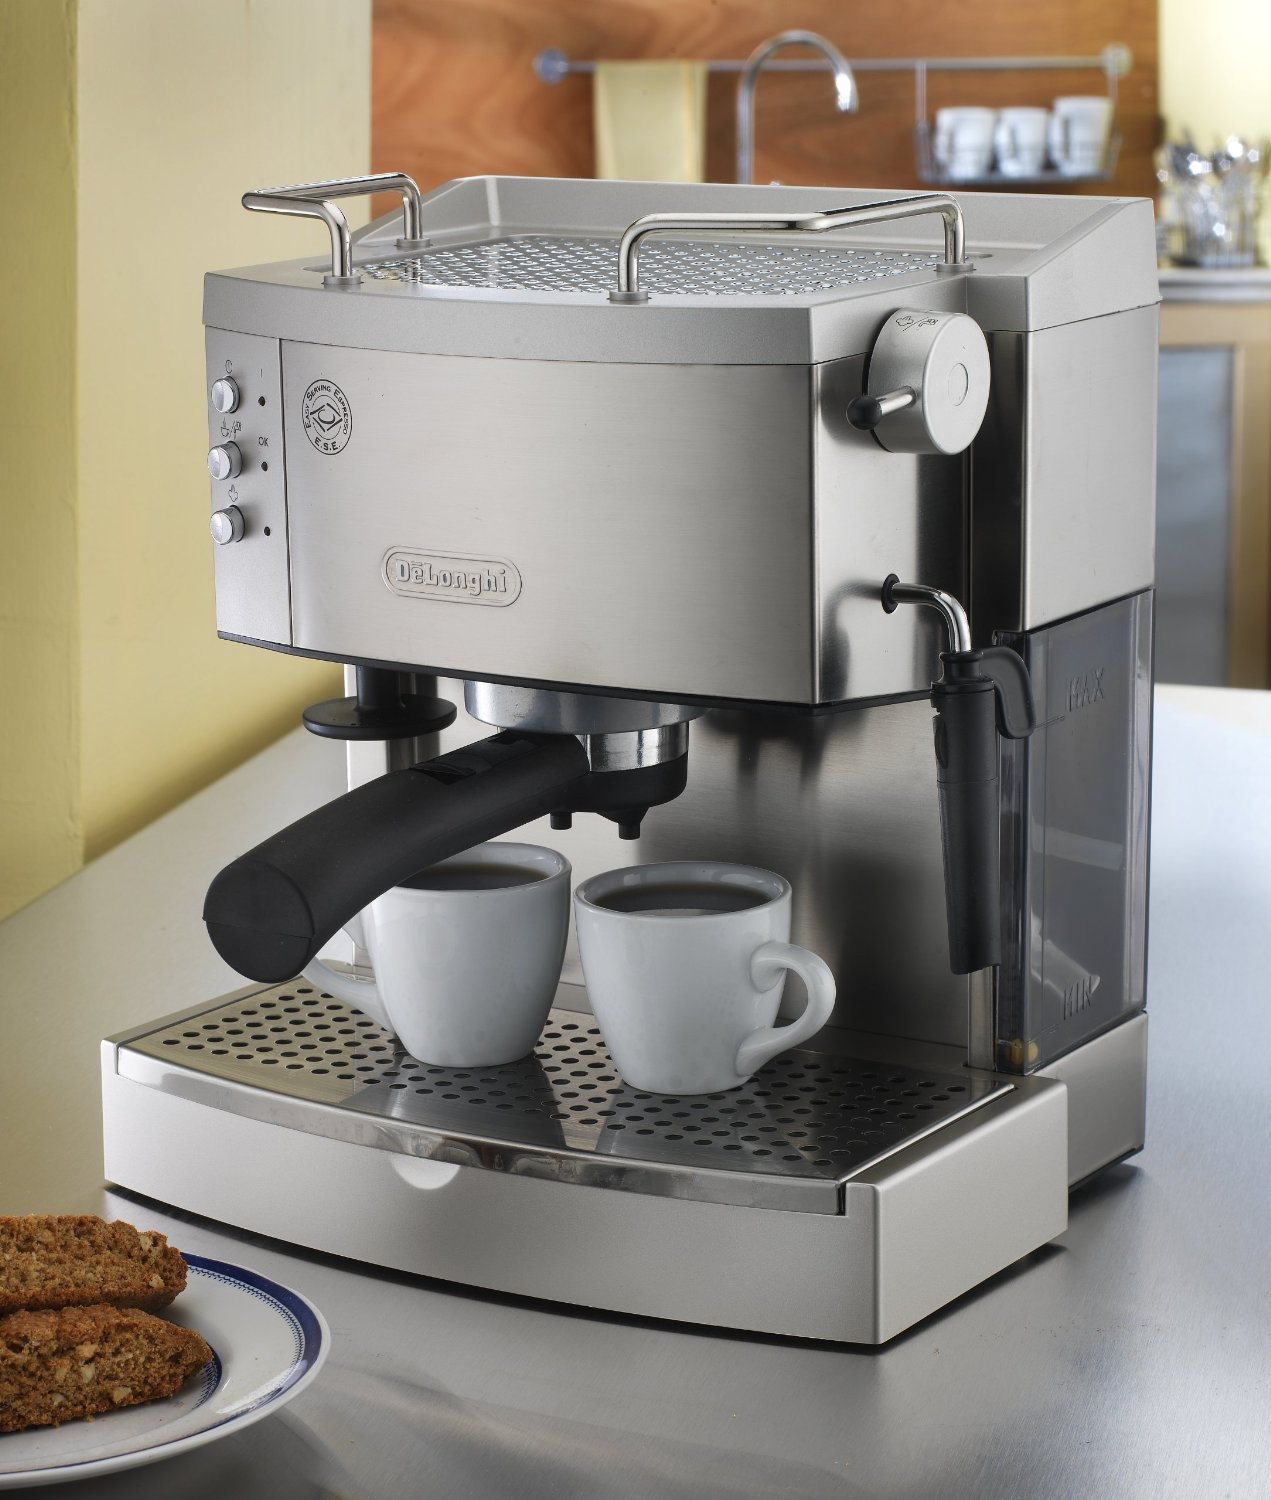 best cappuccino maker we reviewed top rated coffee makers. Black Bedroom Furniture Sets. Home Design Ideas